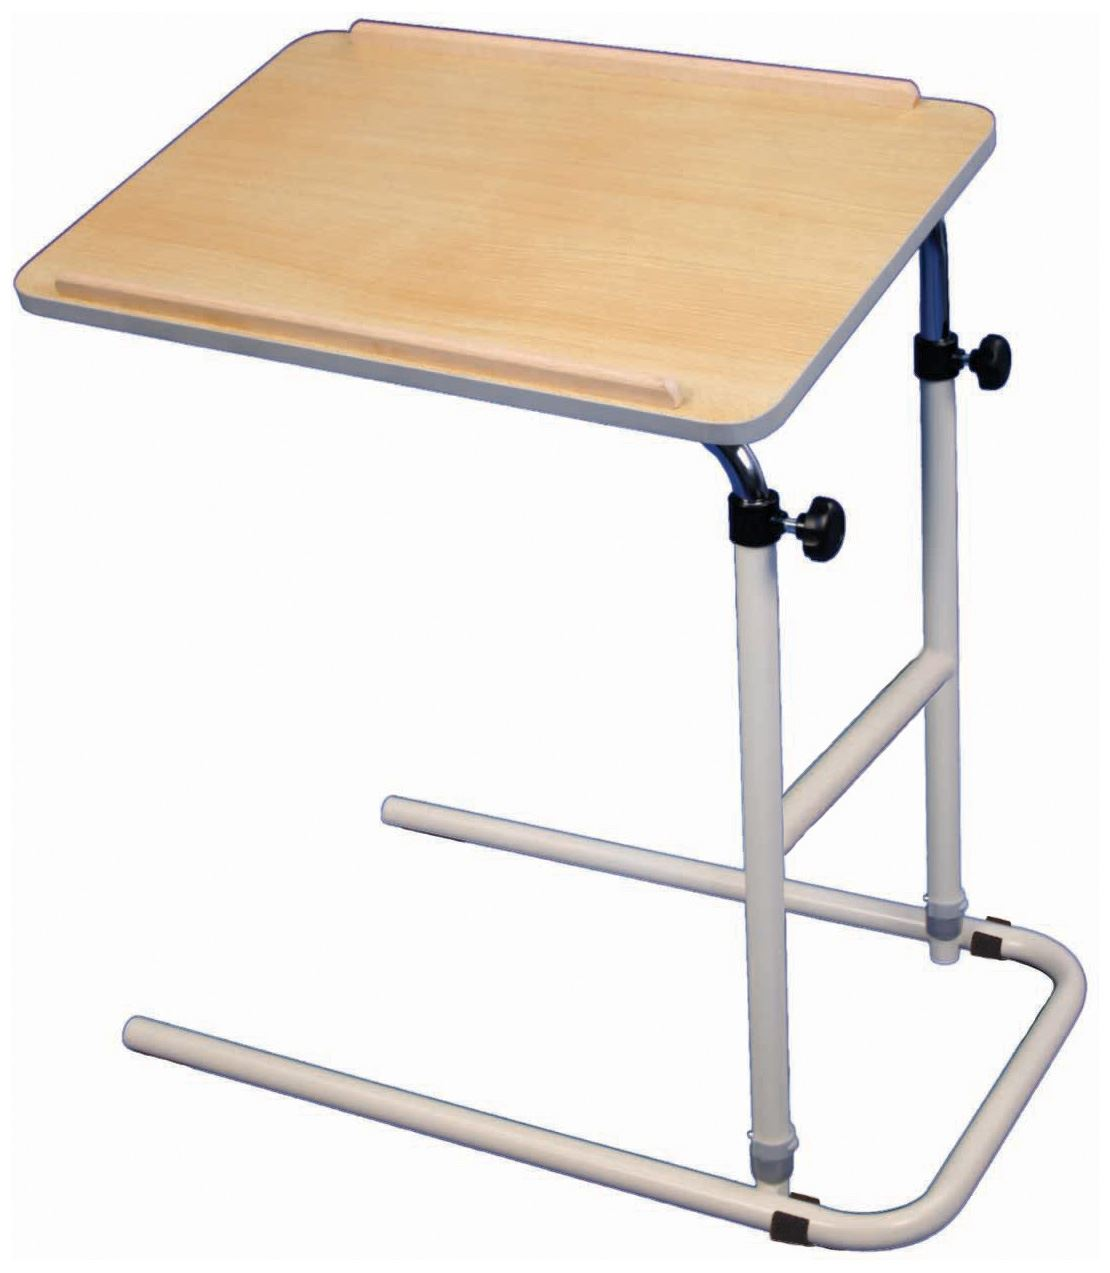 Cantilever Over Bed Or Chair Table Adjustable Height Tilt